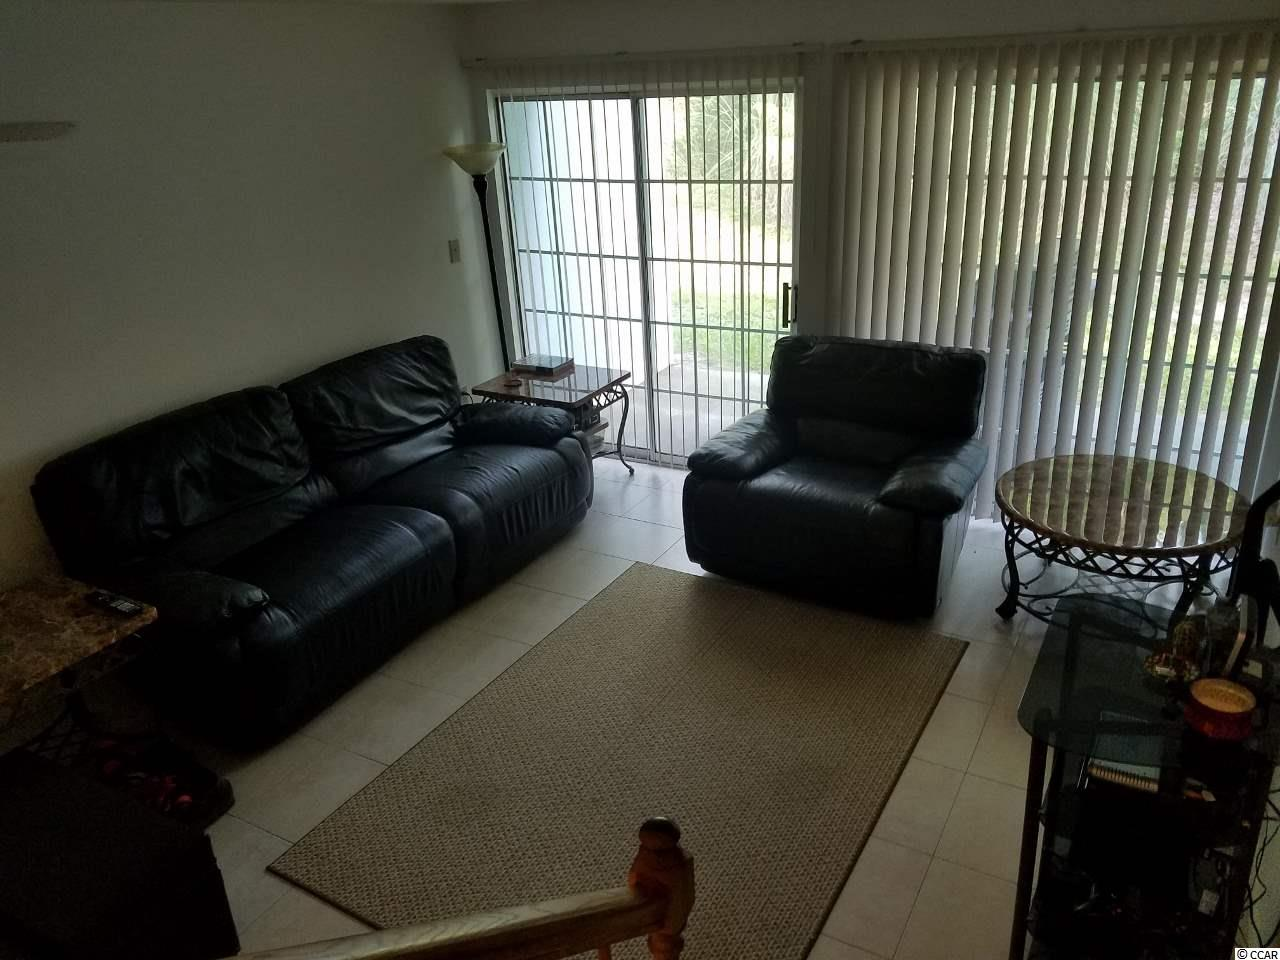 Contact your Realtor for this 2 bedroom condo for sale at  PINEGROVE